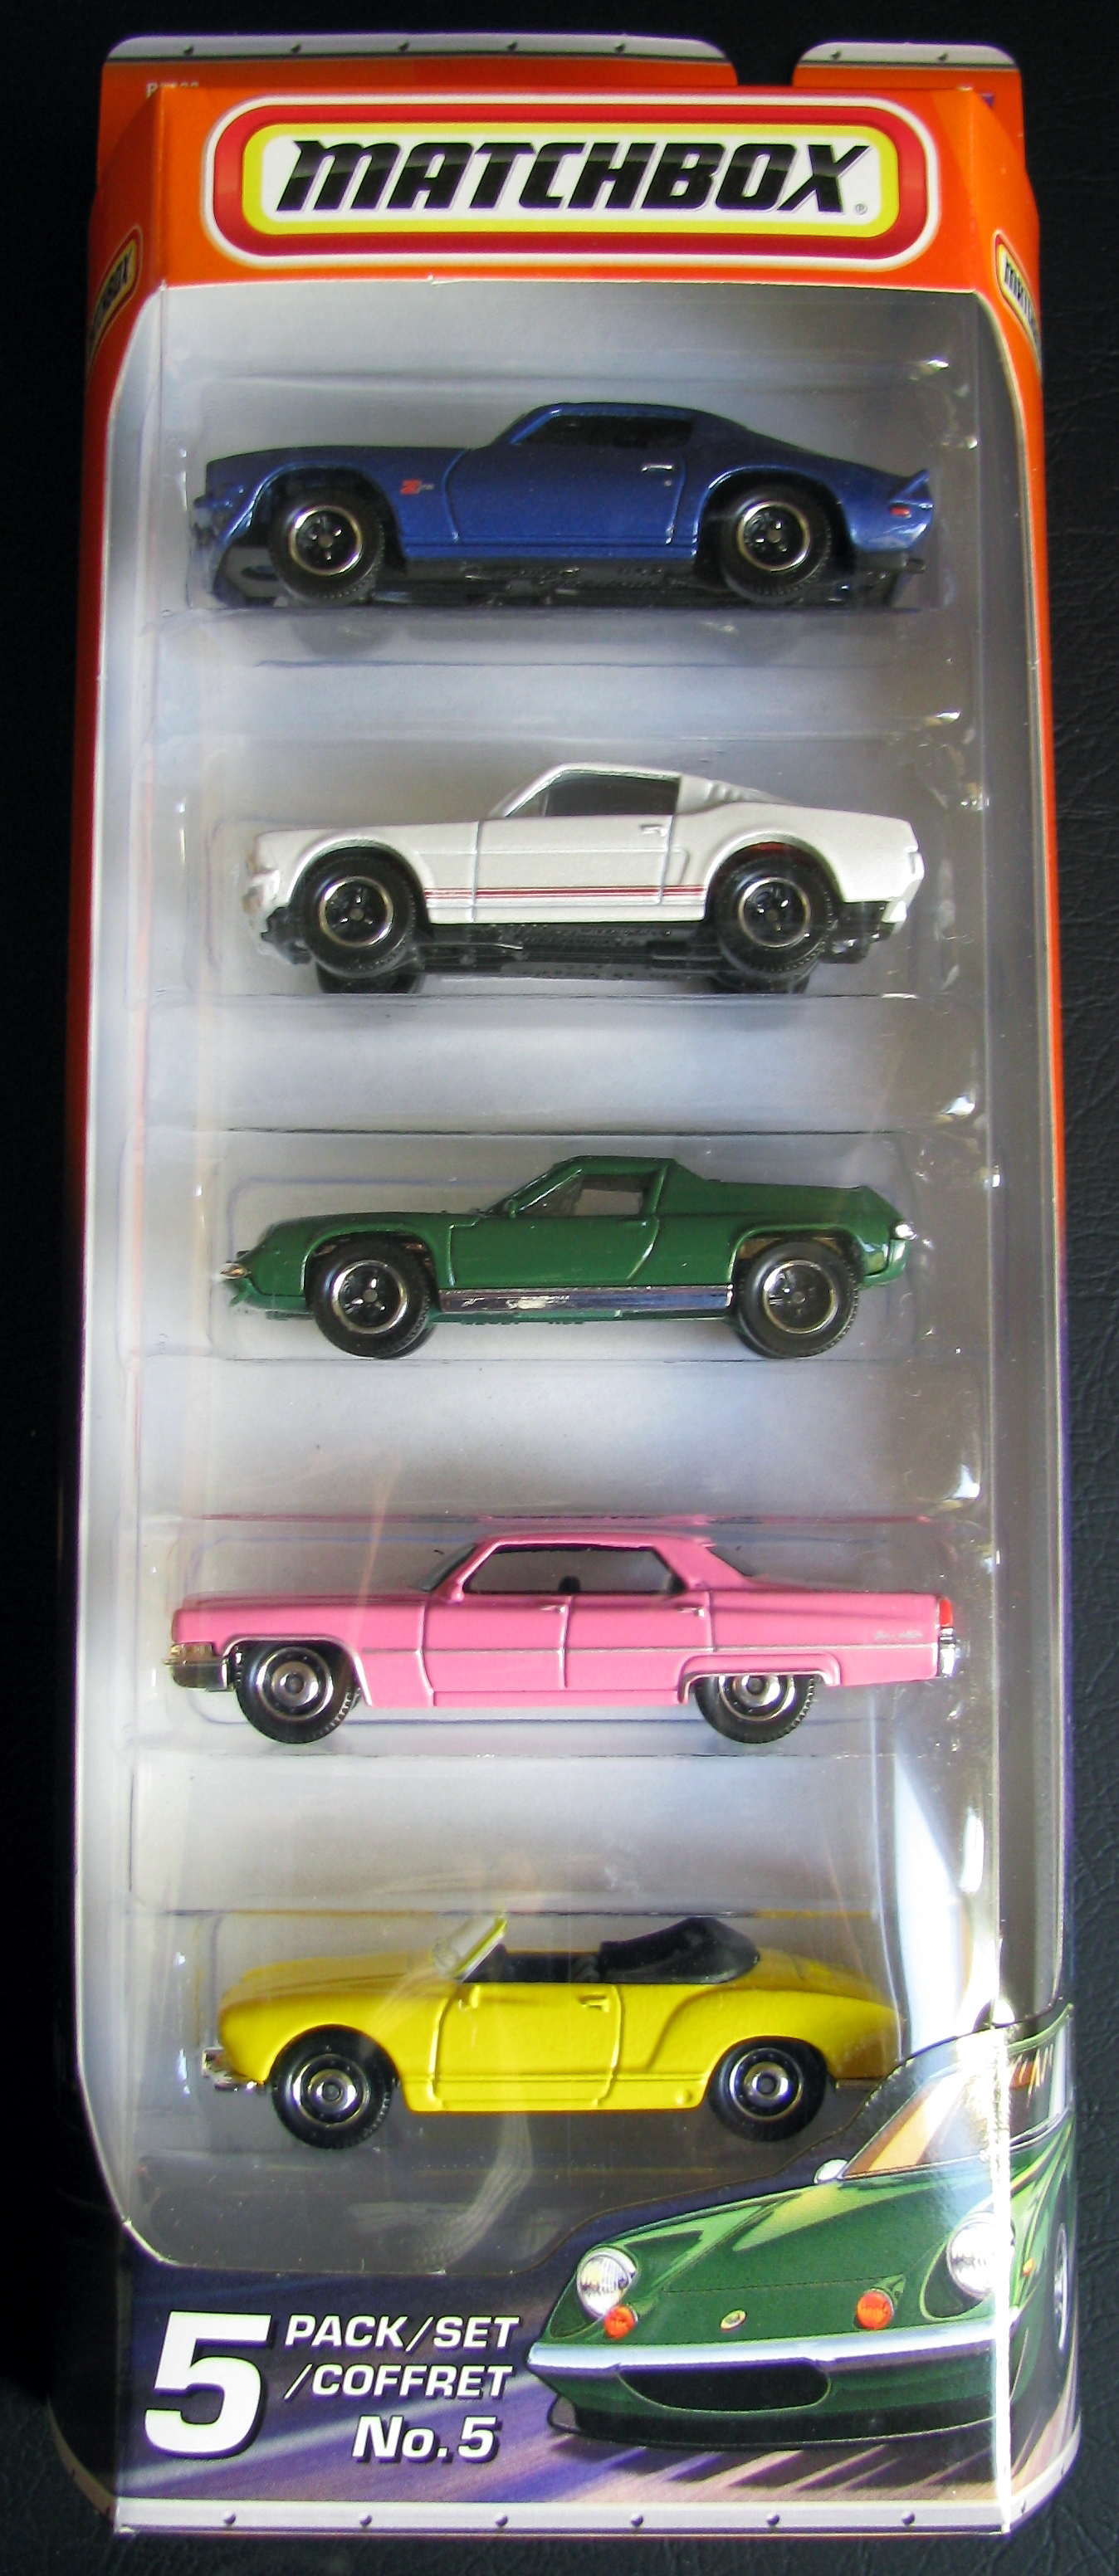 Image - 2010 5-packs No.5 Classic Rides.jpg | Matchbox Cars Wiki ...